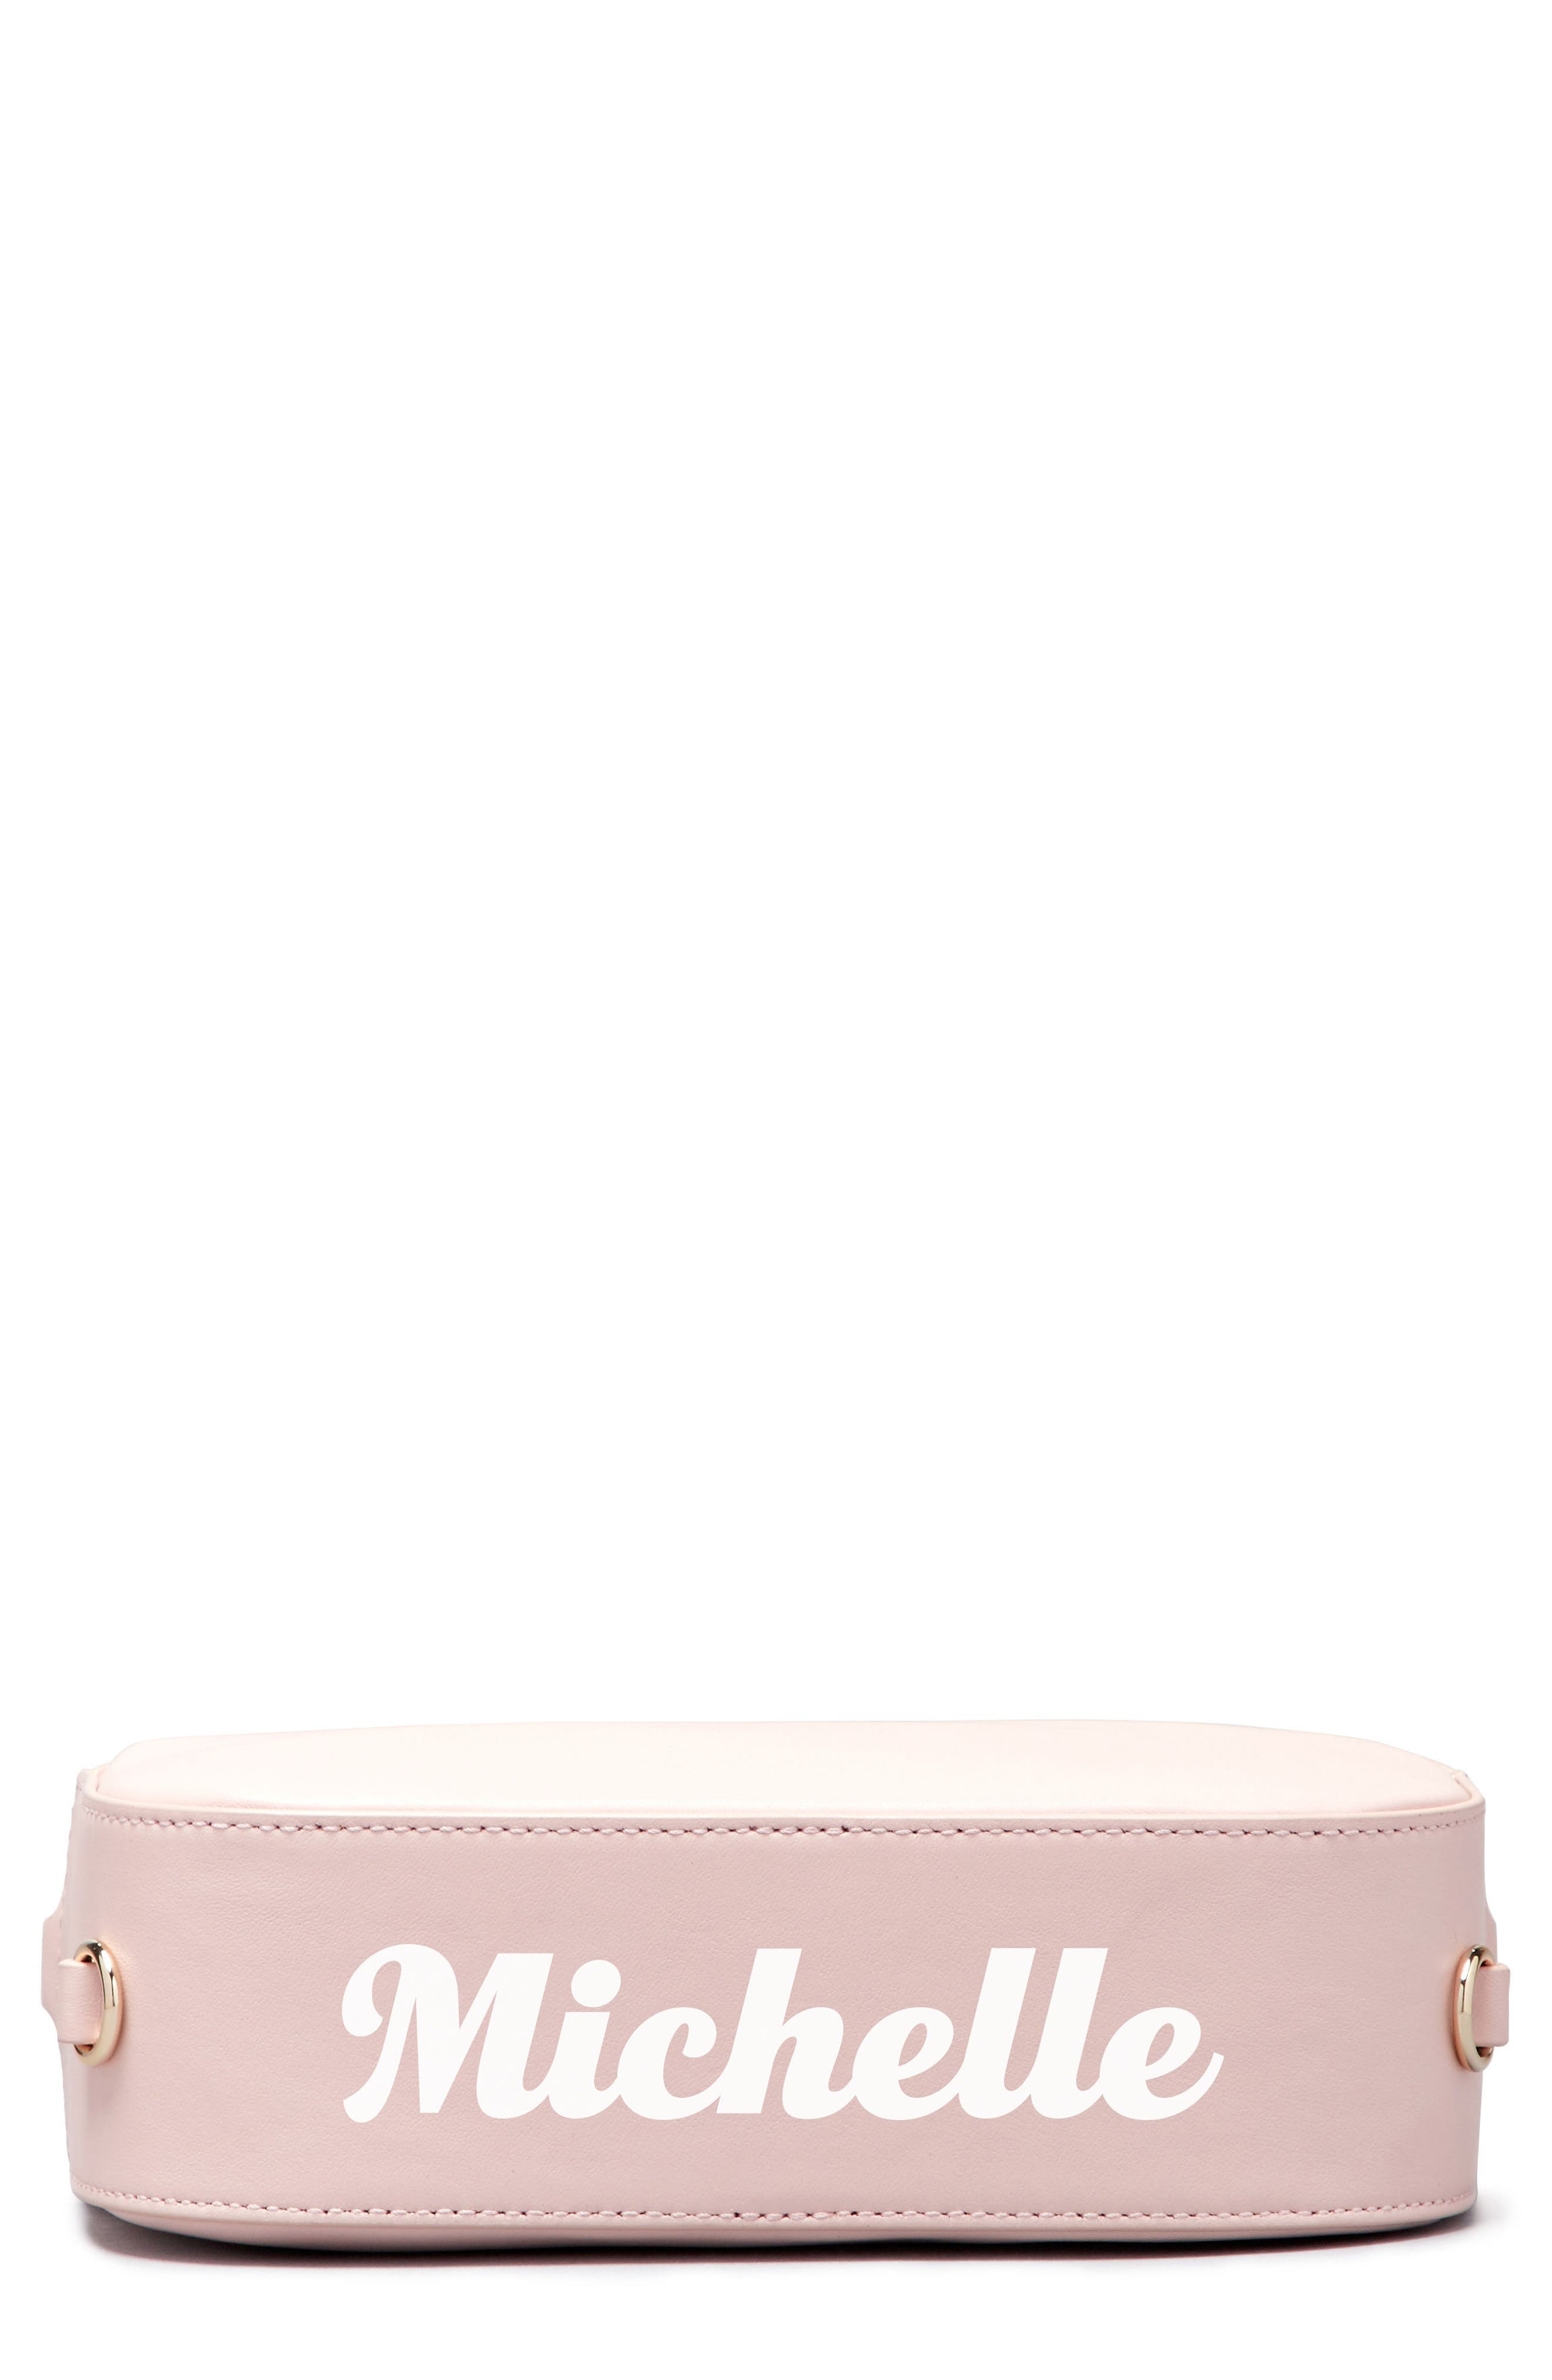 Personalized Leather Camera Bag,                             Alternate thumbnail 3, color,                             Cotton Candy/ White